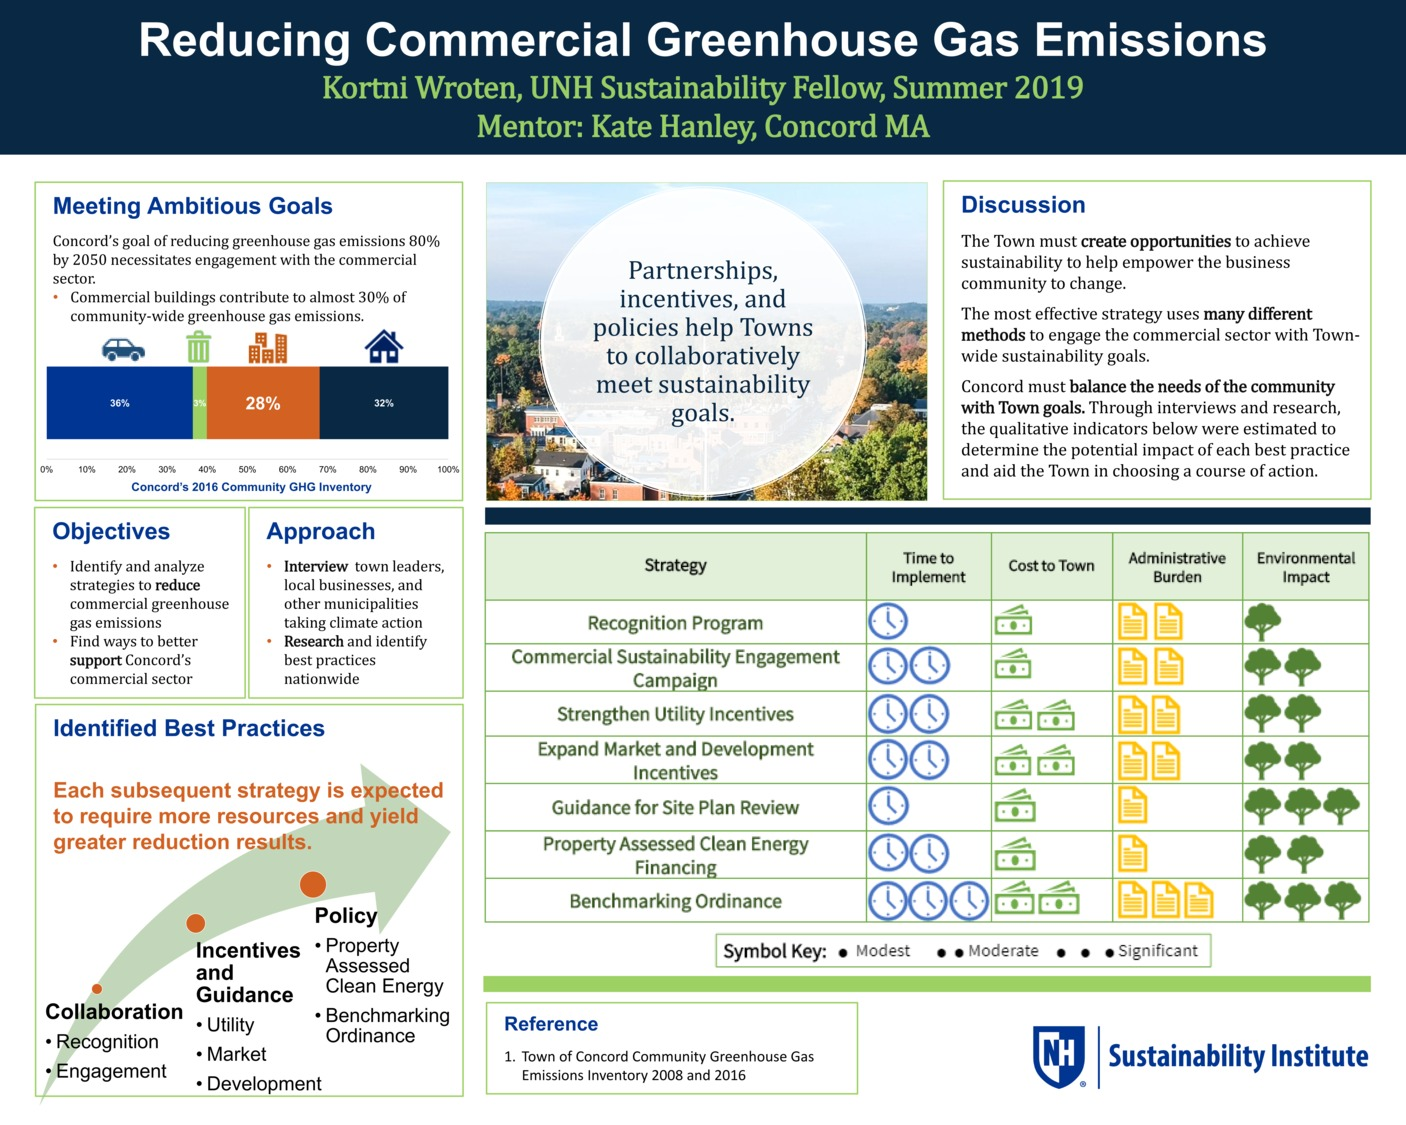 Reducing Commercial Ghgs In Concord, Ma by kwroten